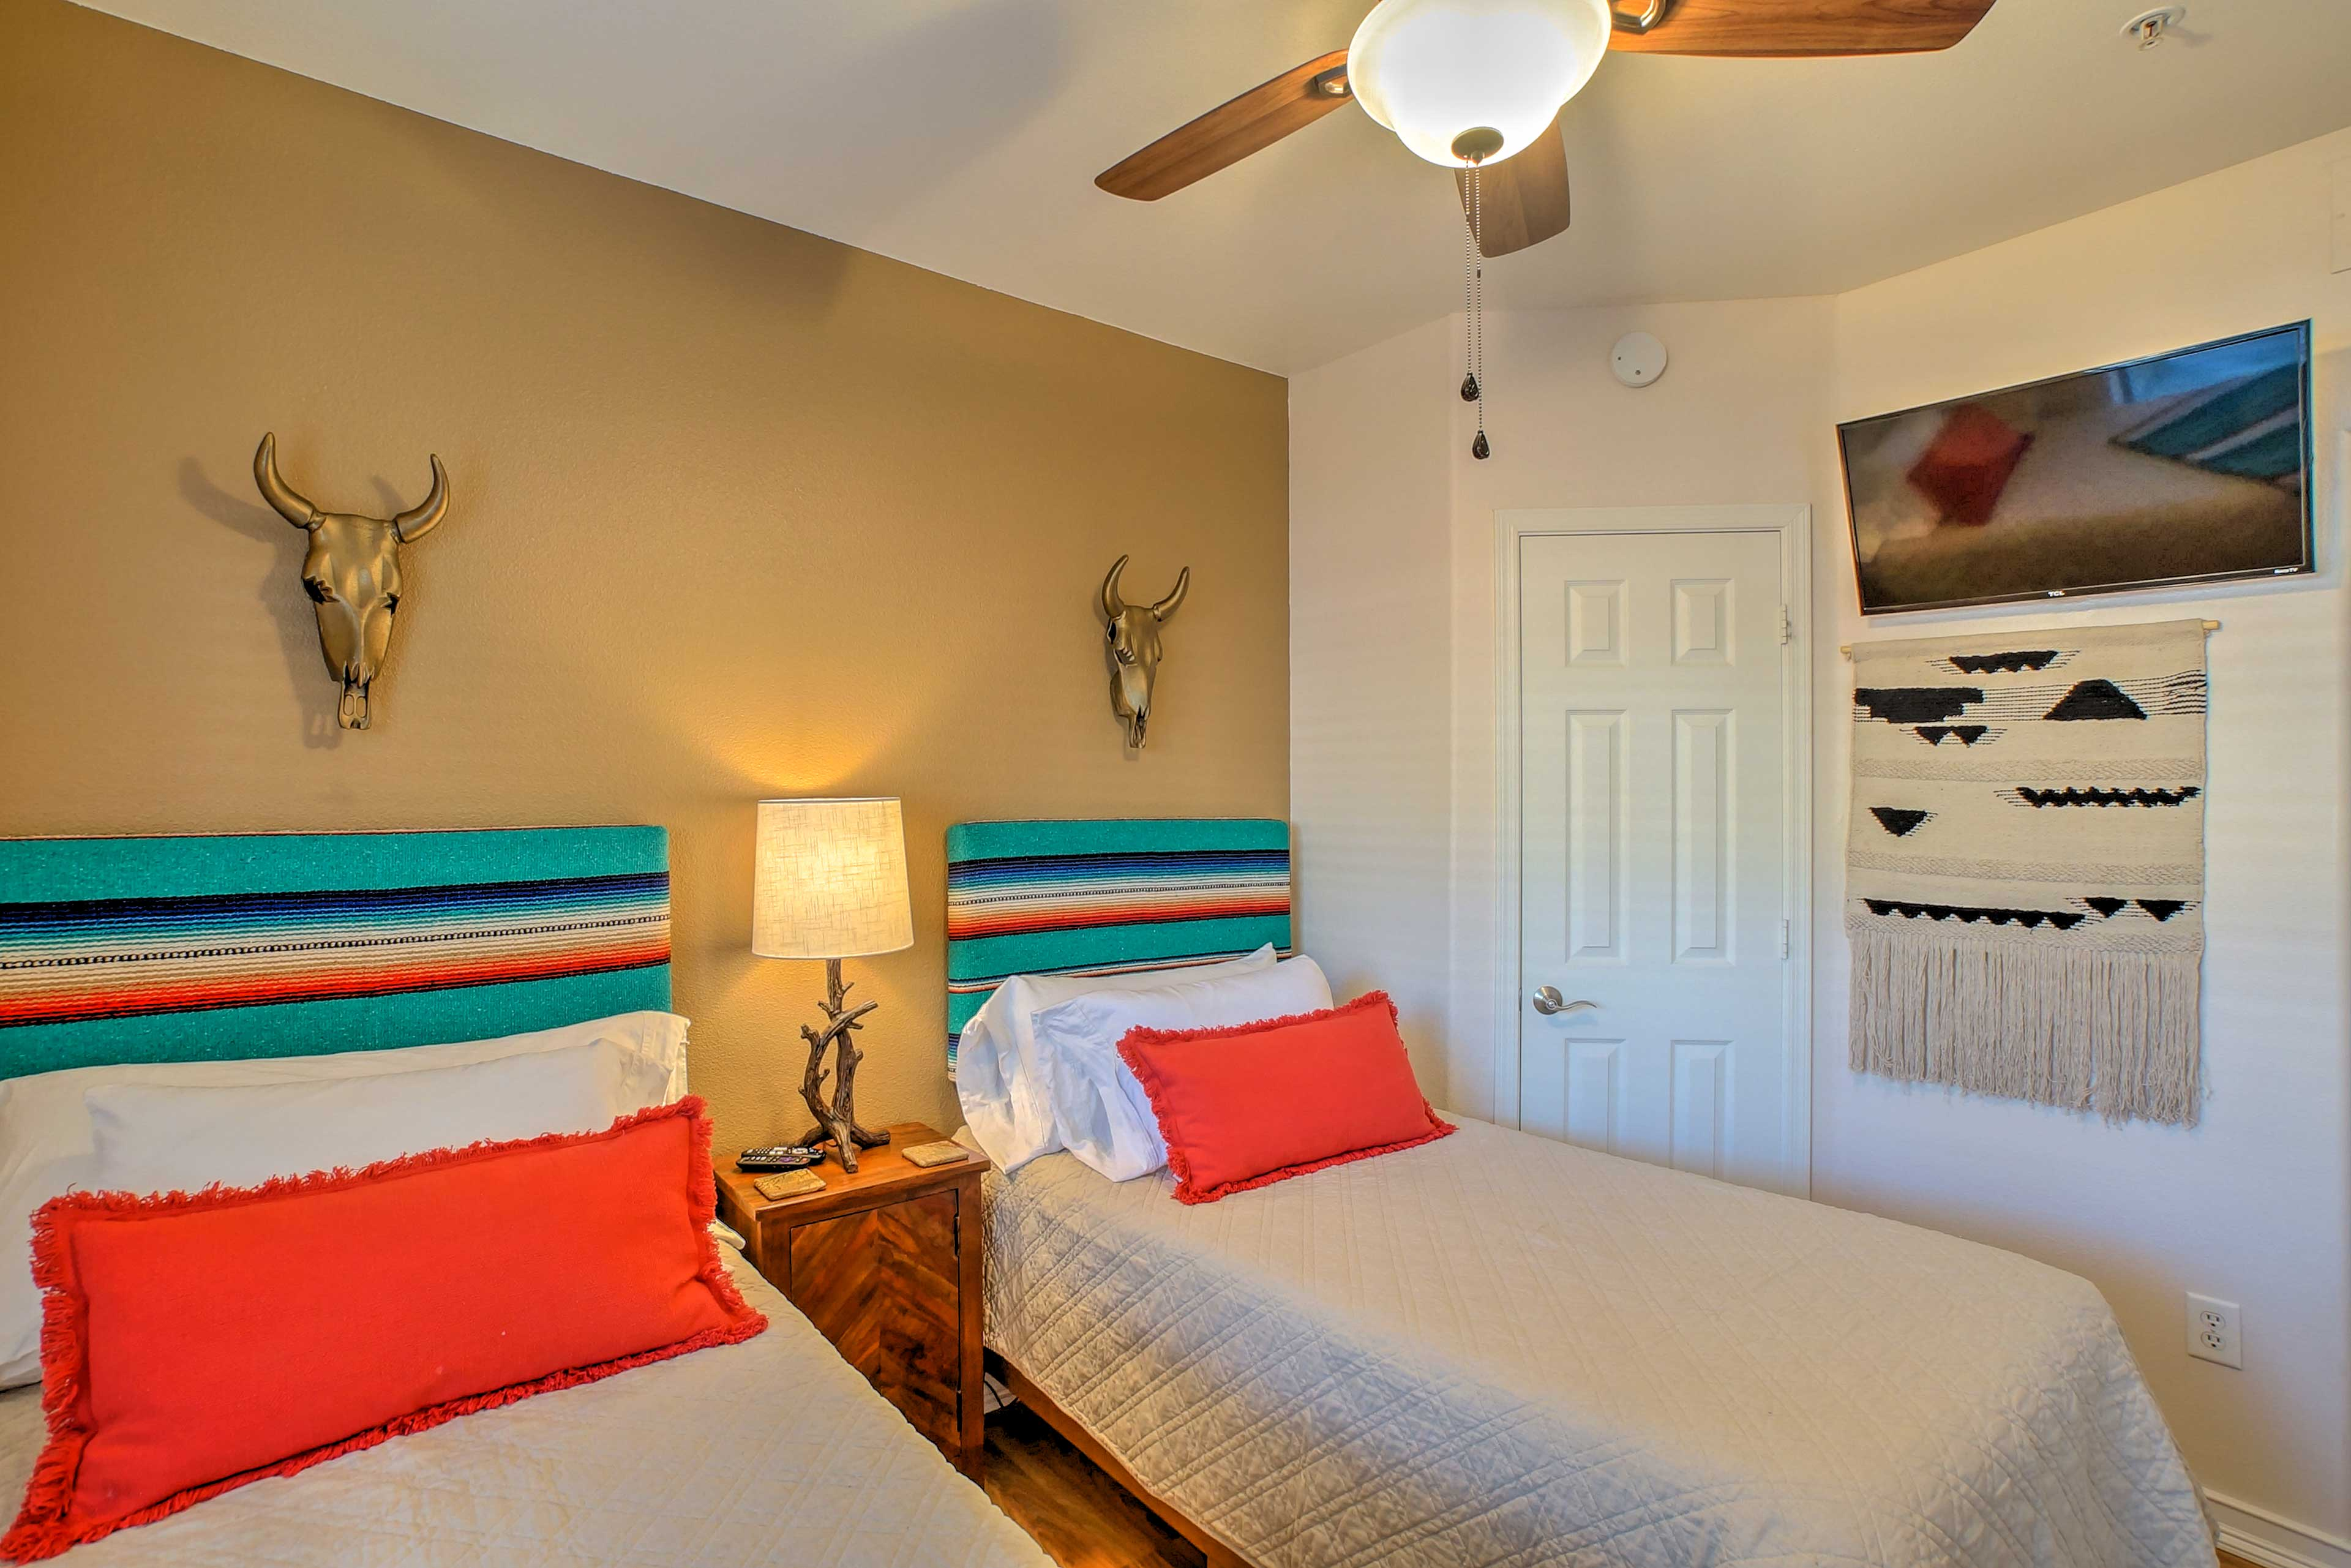 Snuggle up in the 2 twin beds.